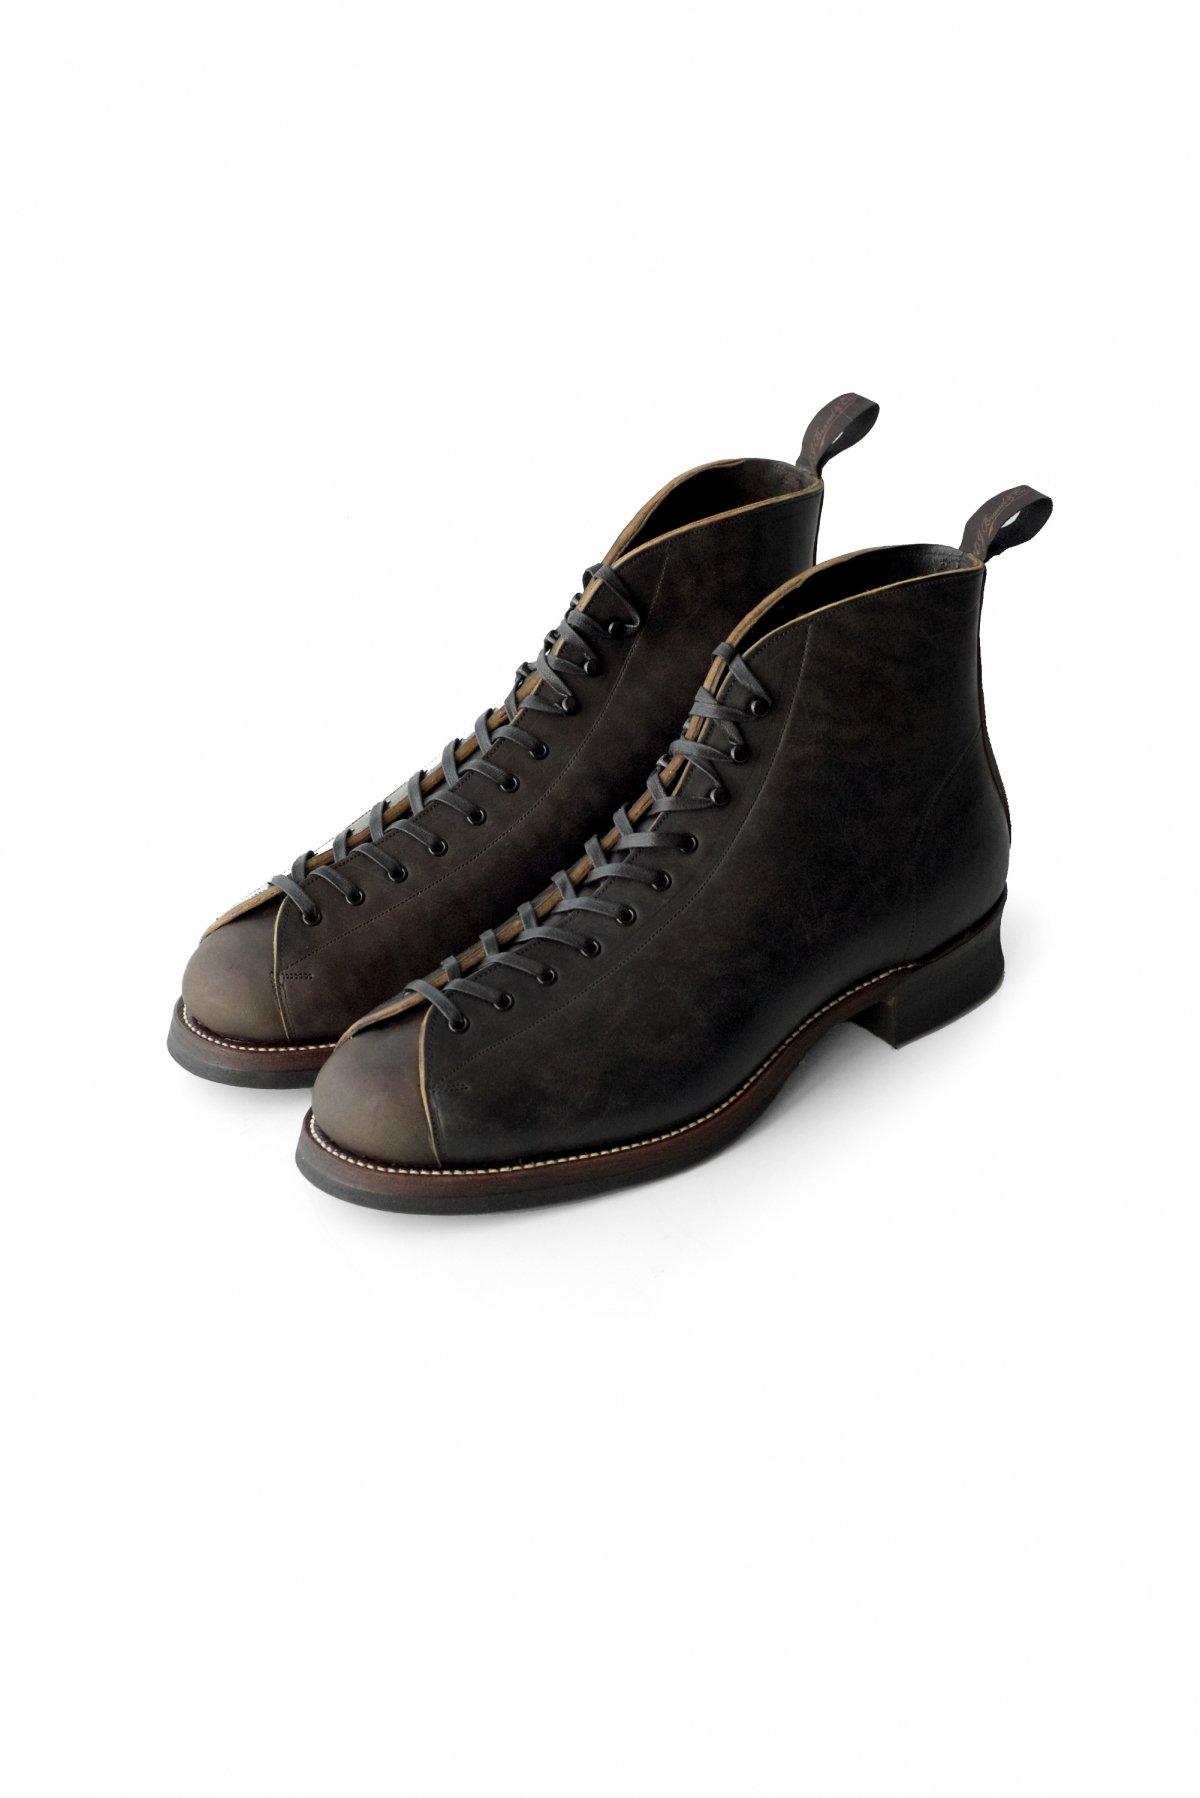 "BOOT - ""The Welder"" HORSEHIDE MONKEY BOOTS - BLACK - PRICE 90,200 tax-in"